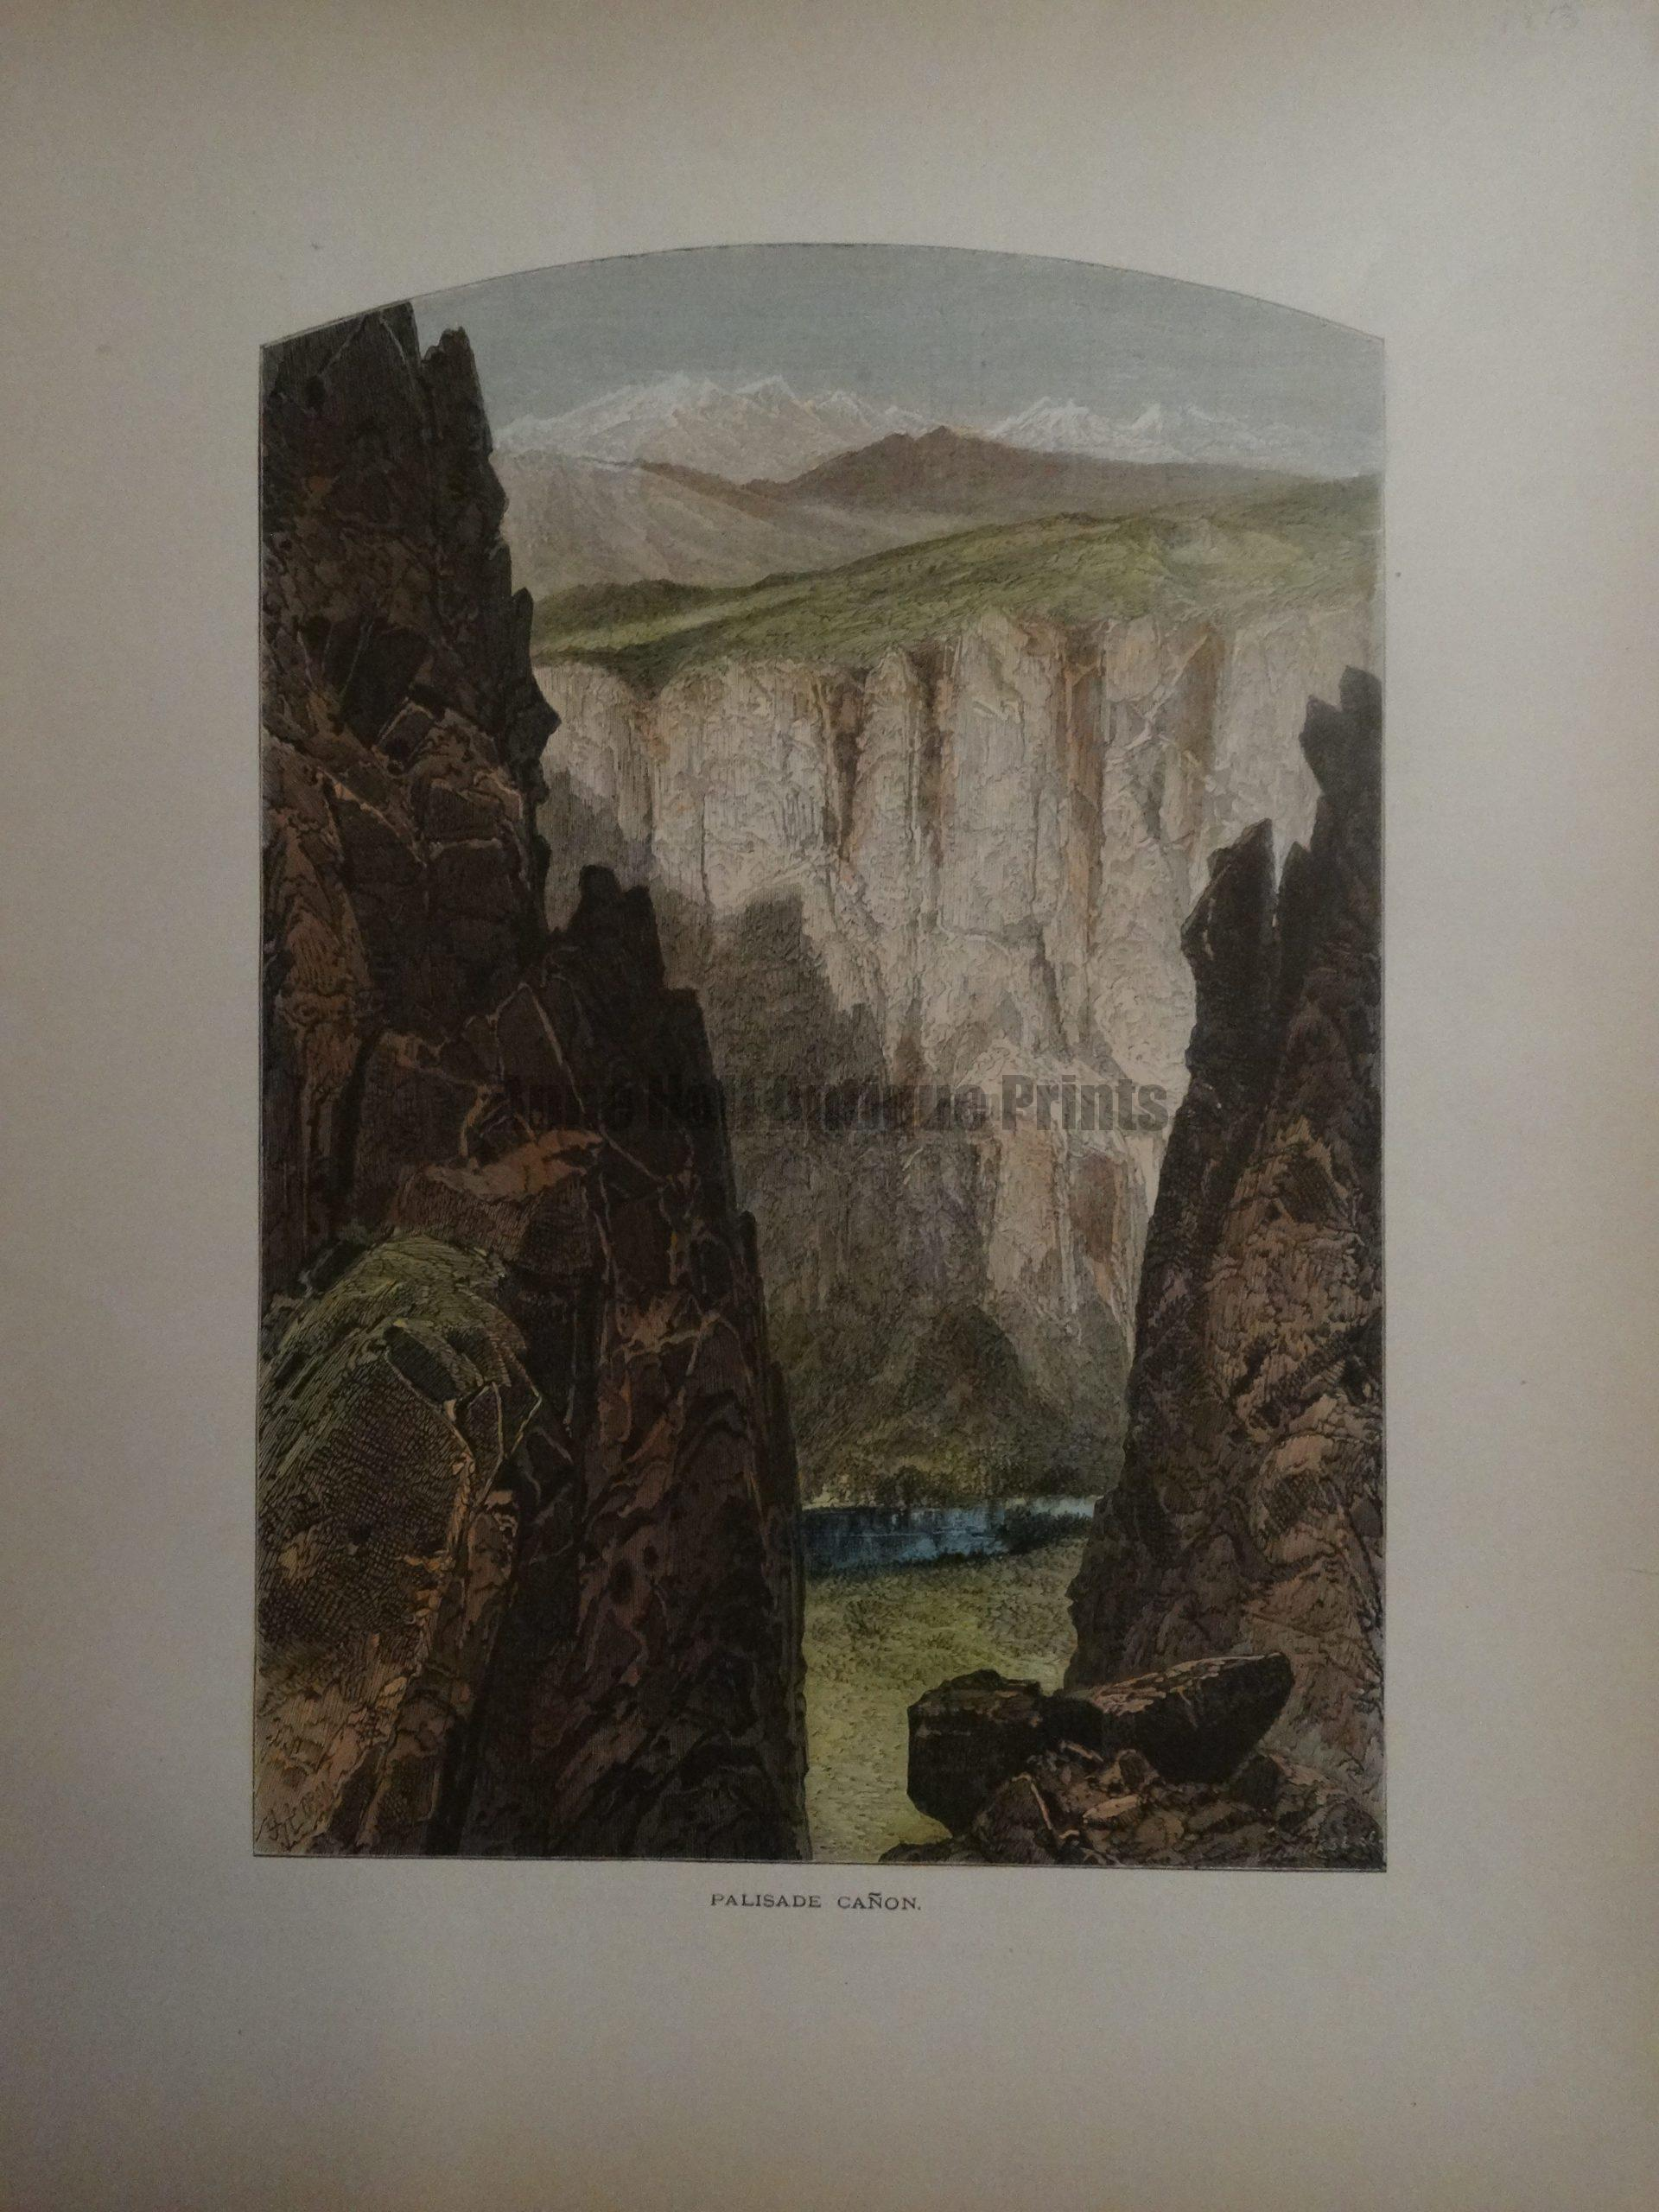 Watercolor engraving from 1873 of Palisade Canyon located in the Santa Catalinas of Arizona. Technical hiking.